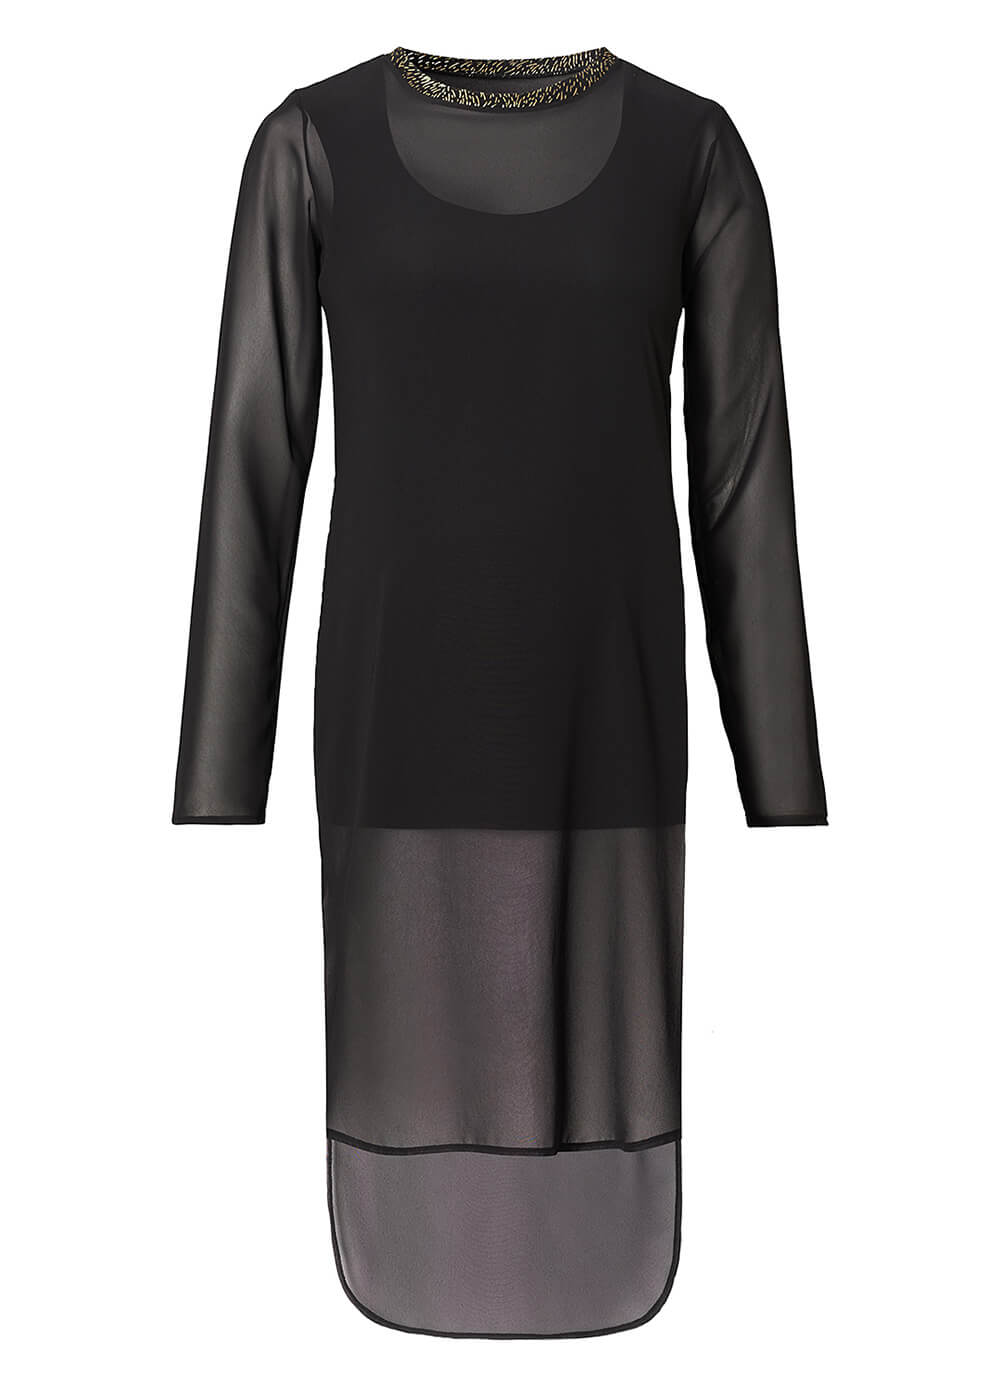 Layered Chiffon Maternity Tunic in Black by Supermom